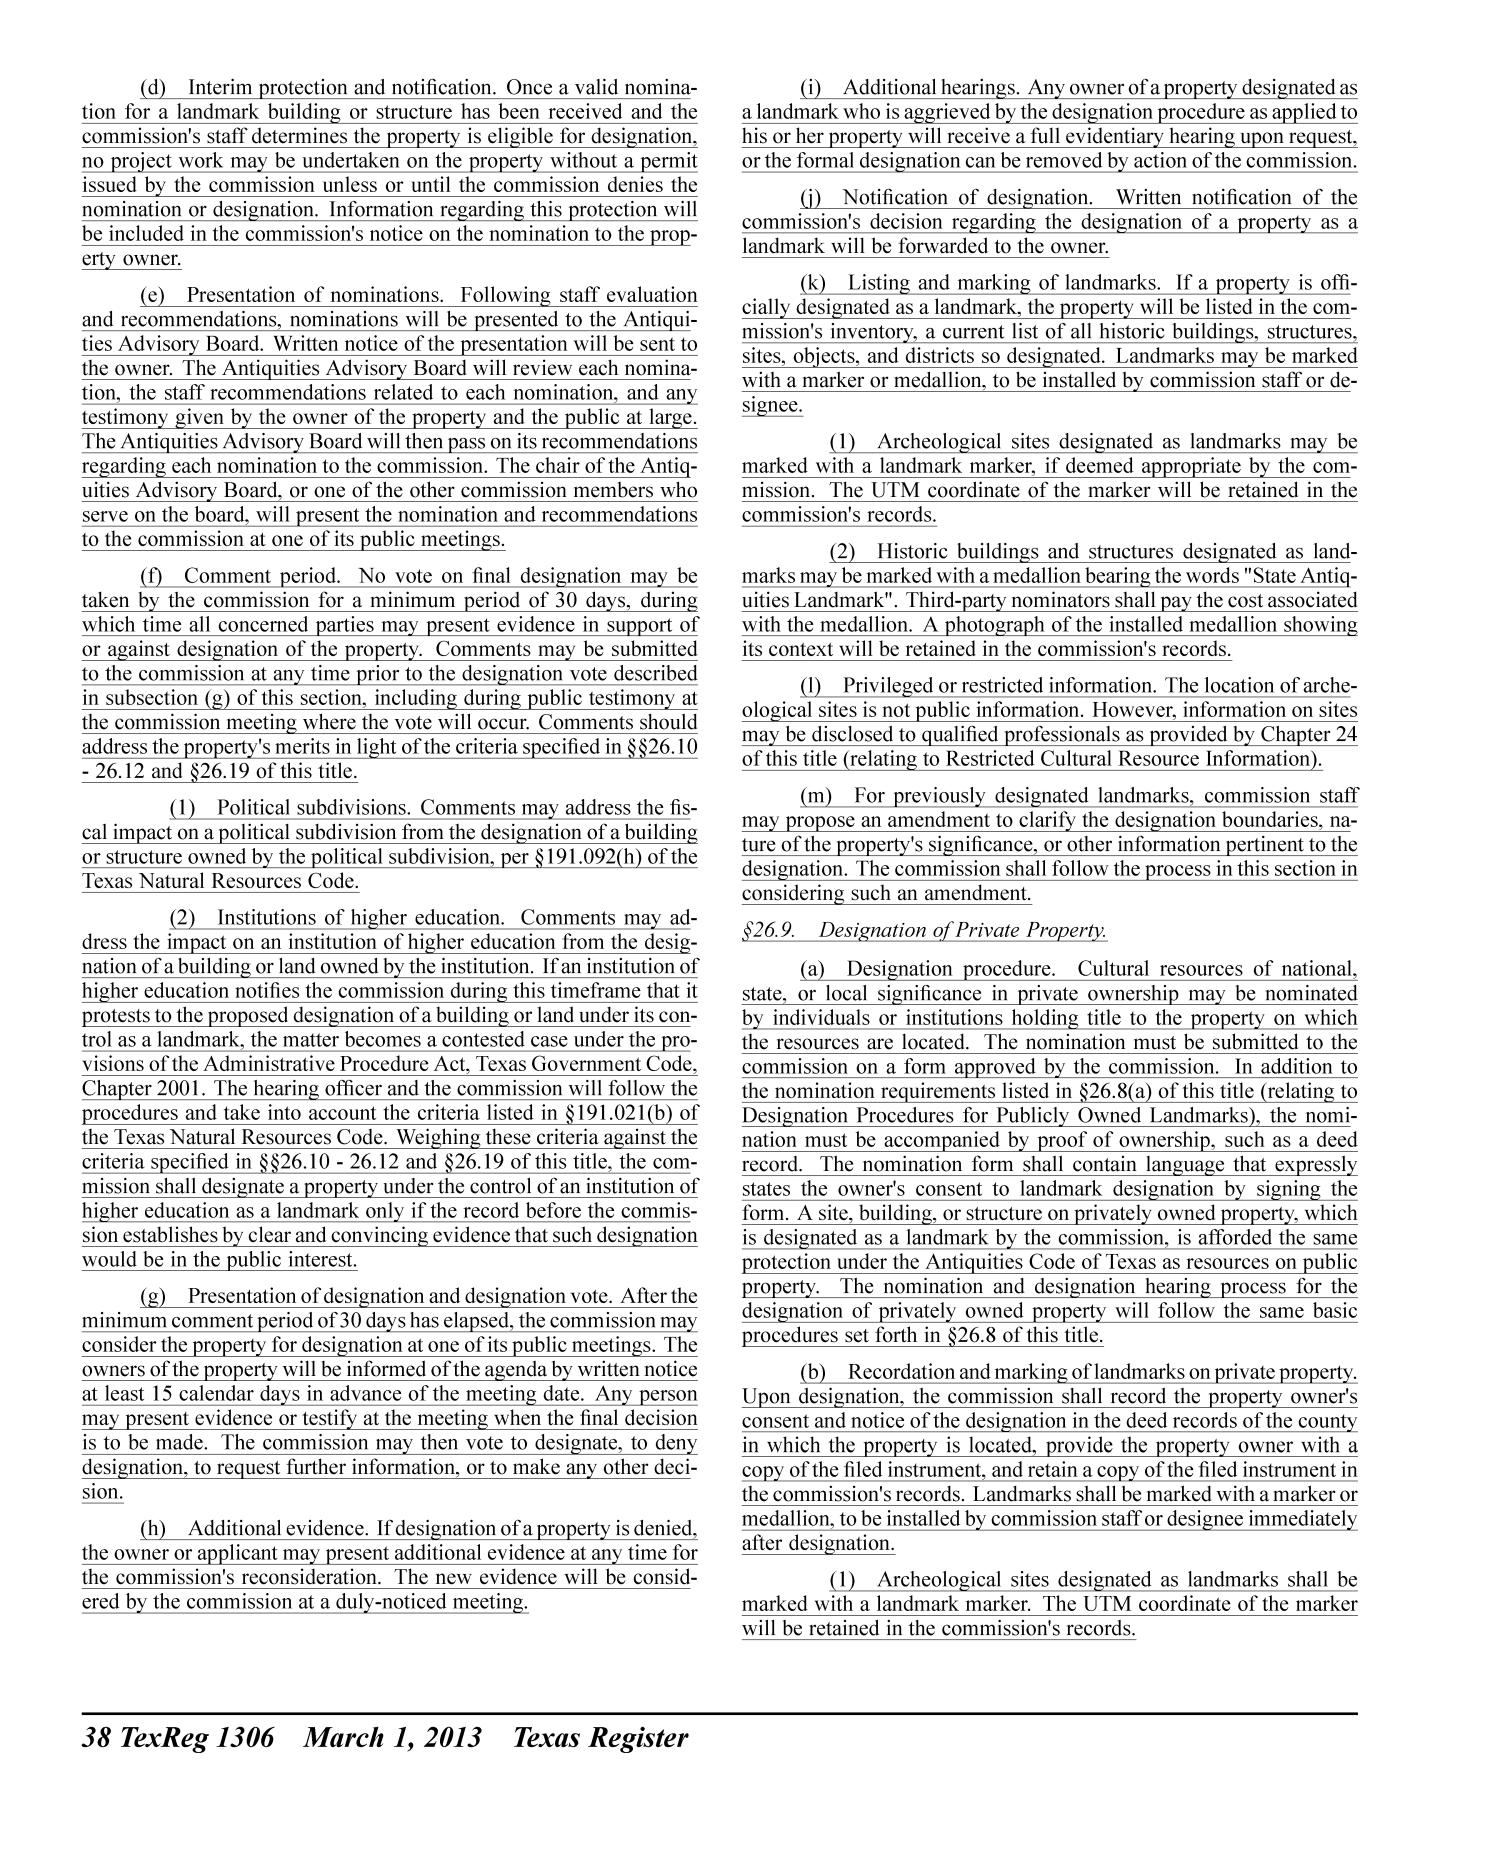 Texas Register, Volume 38, Number 9, Pages 1269-1452, March 1, 2013                                                                                                      1306